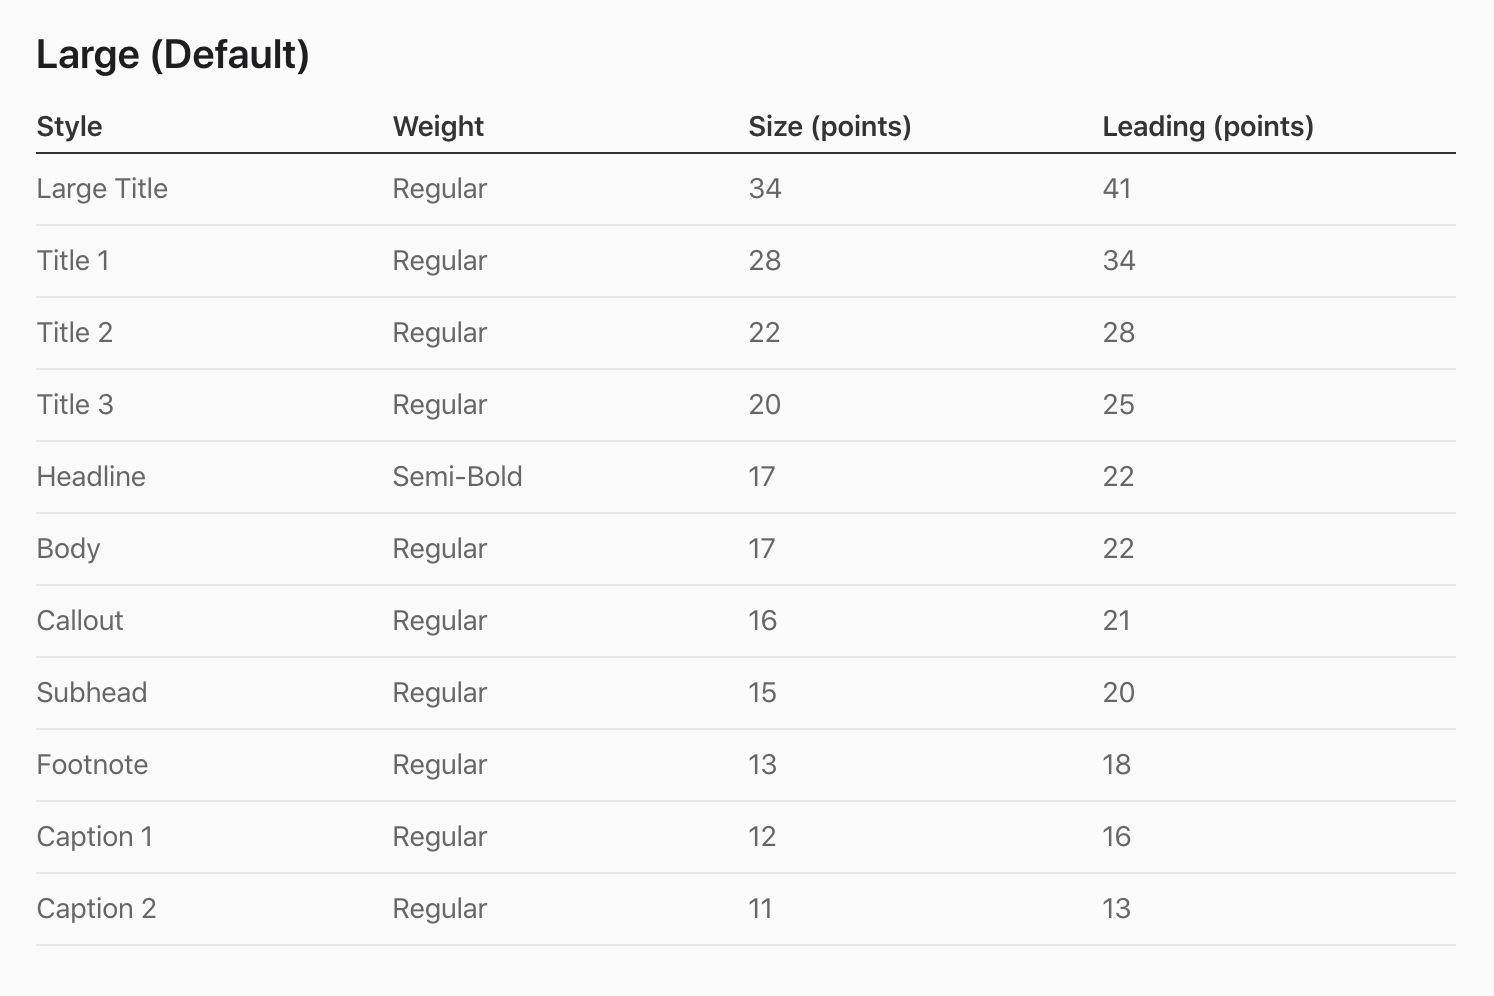 The weight, size, and leading values for large text size